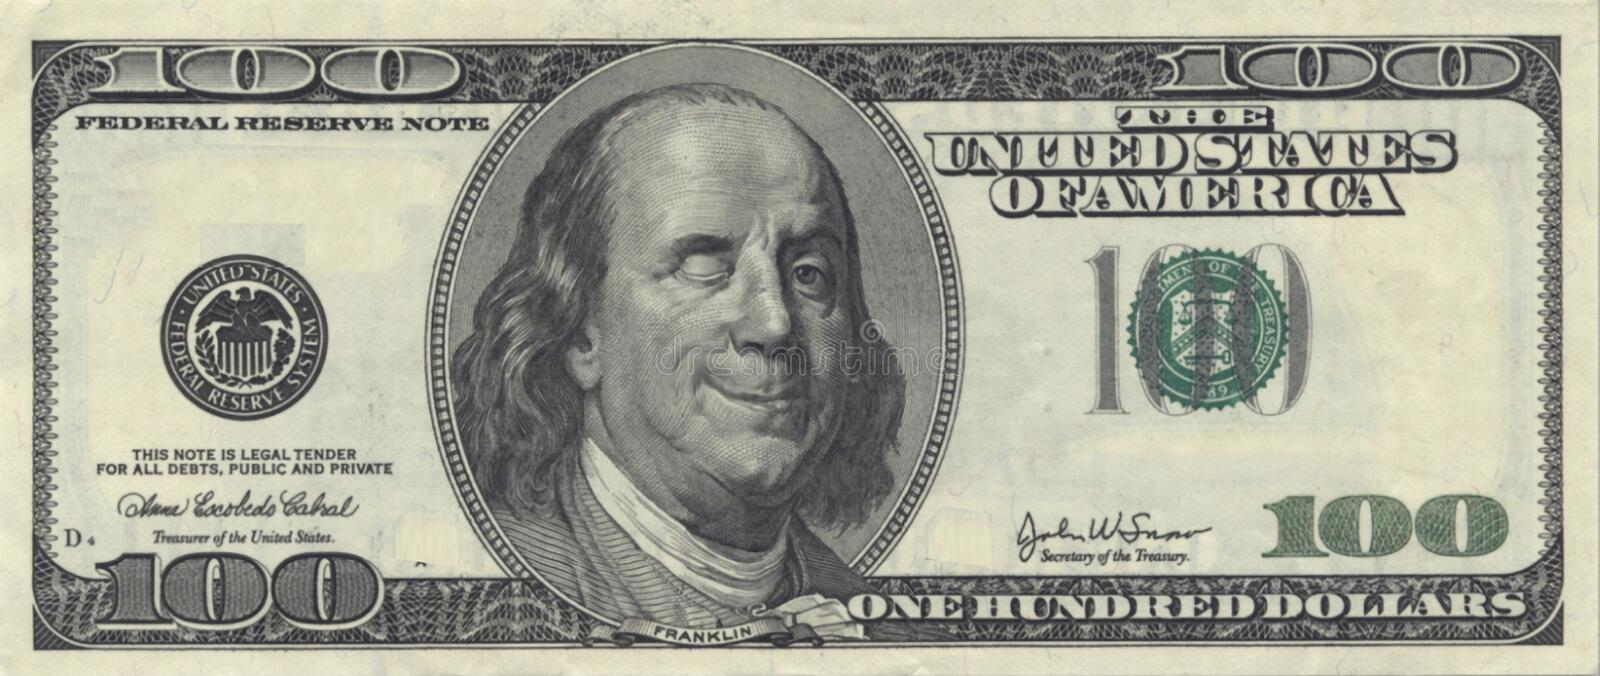 Smiling Ben Franklin with Wink